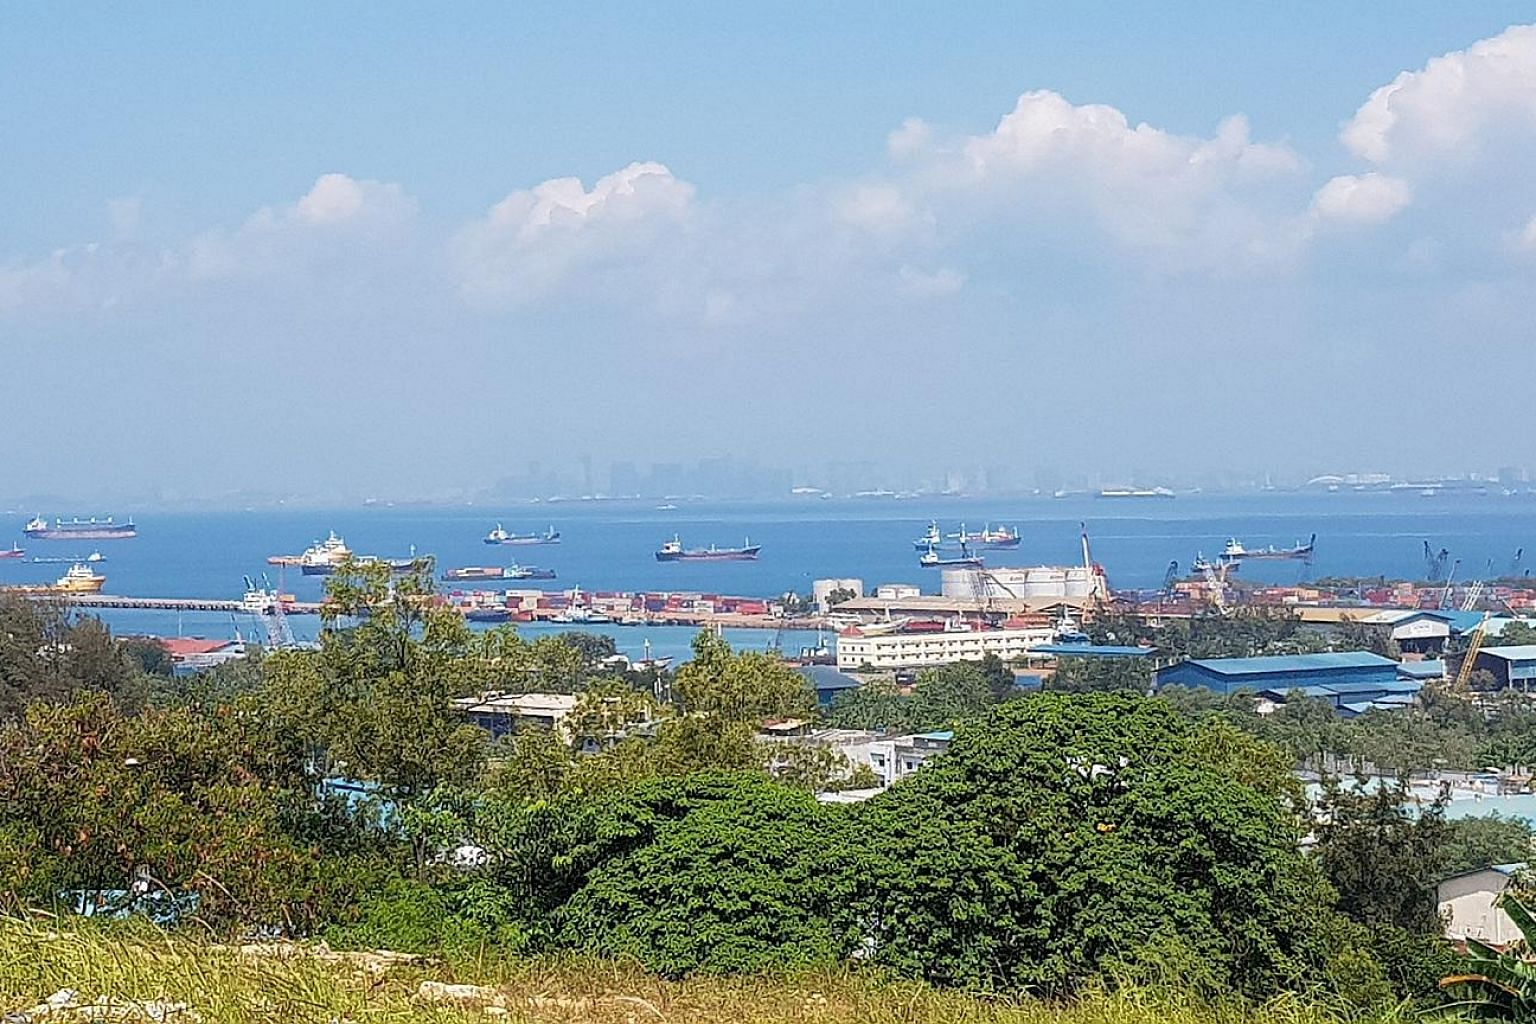 Batu Ampar port, located on the northern tip of Batam and facing the Singapore Strait, will soon take delivery of three new mobile harbour cranes and 12 terminal tractors, paid for with part of the fund injection from state port operator Pelindo I.